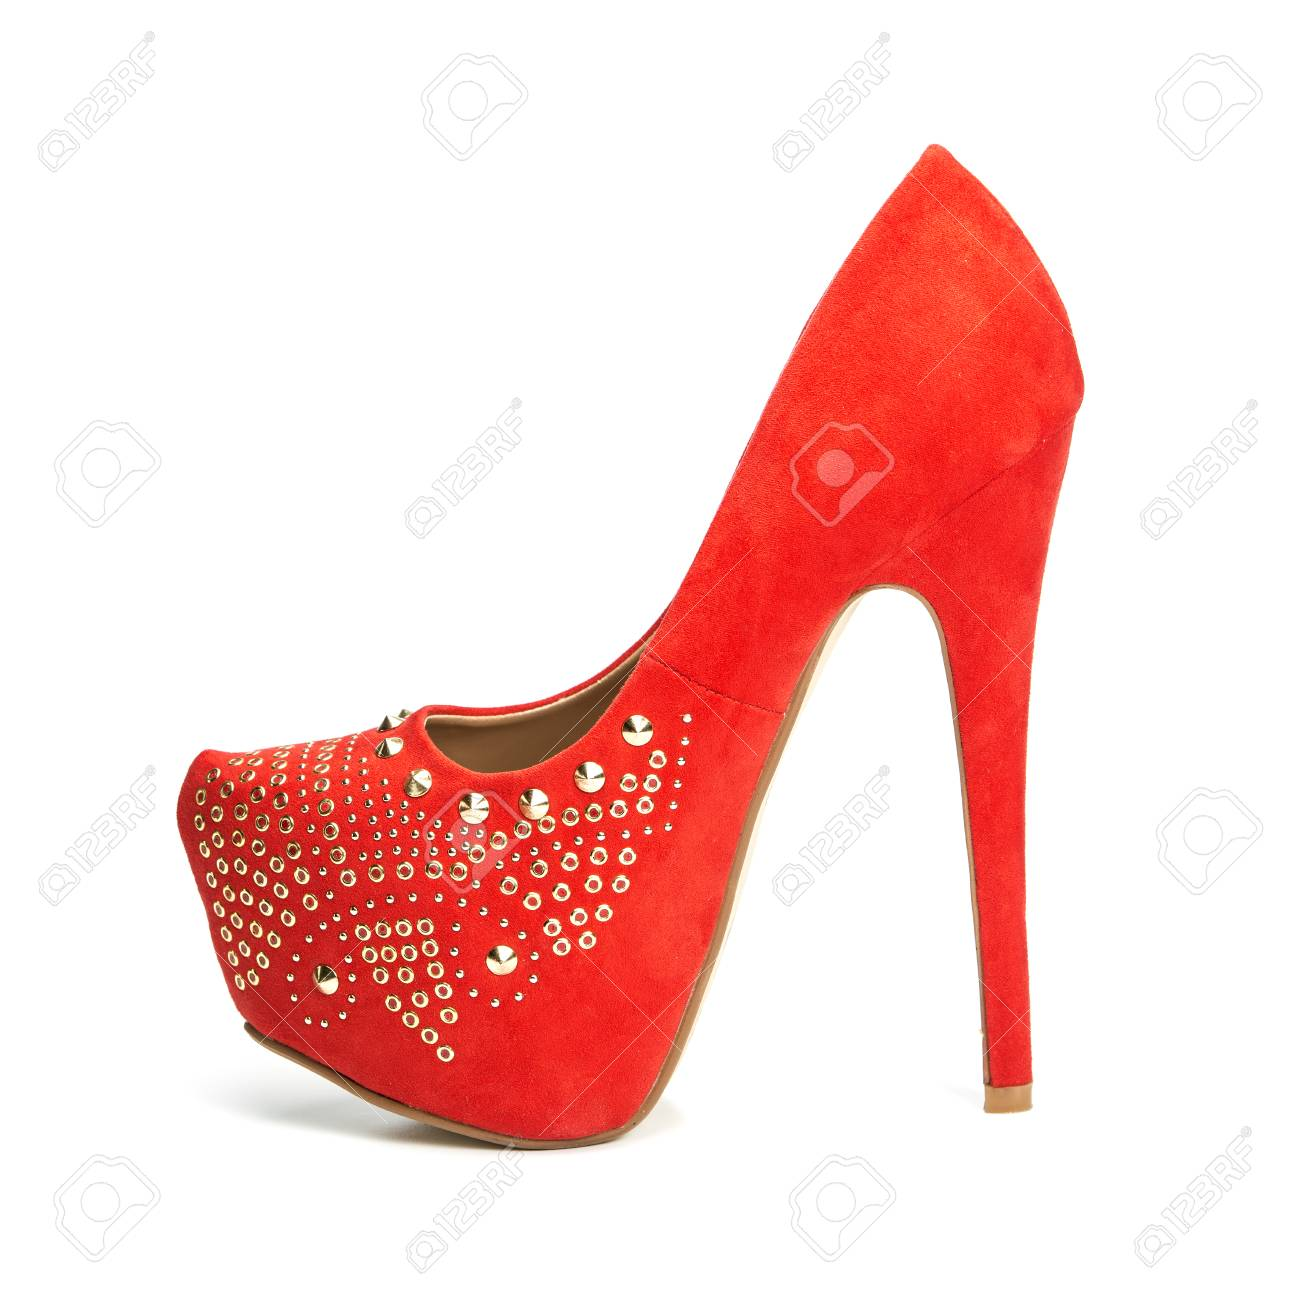 362a21b4288 Fashionable High heels shoes in red and gold with inner platform..